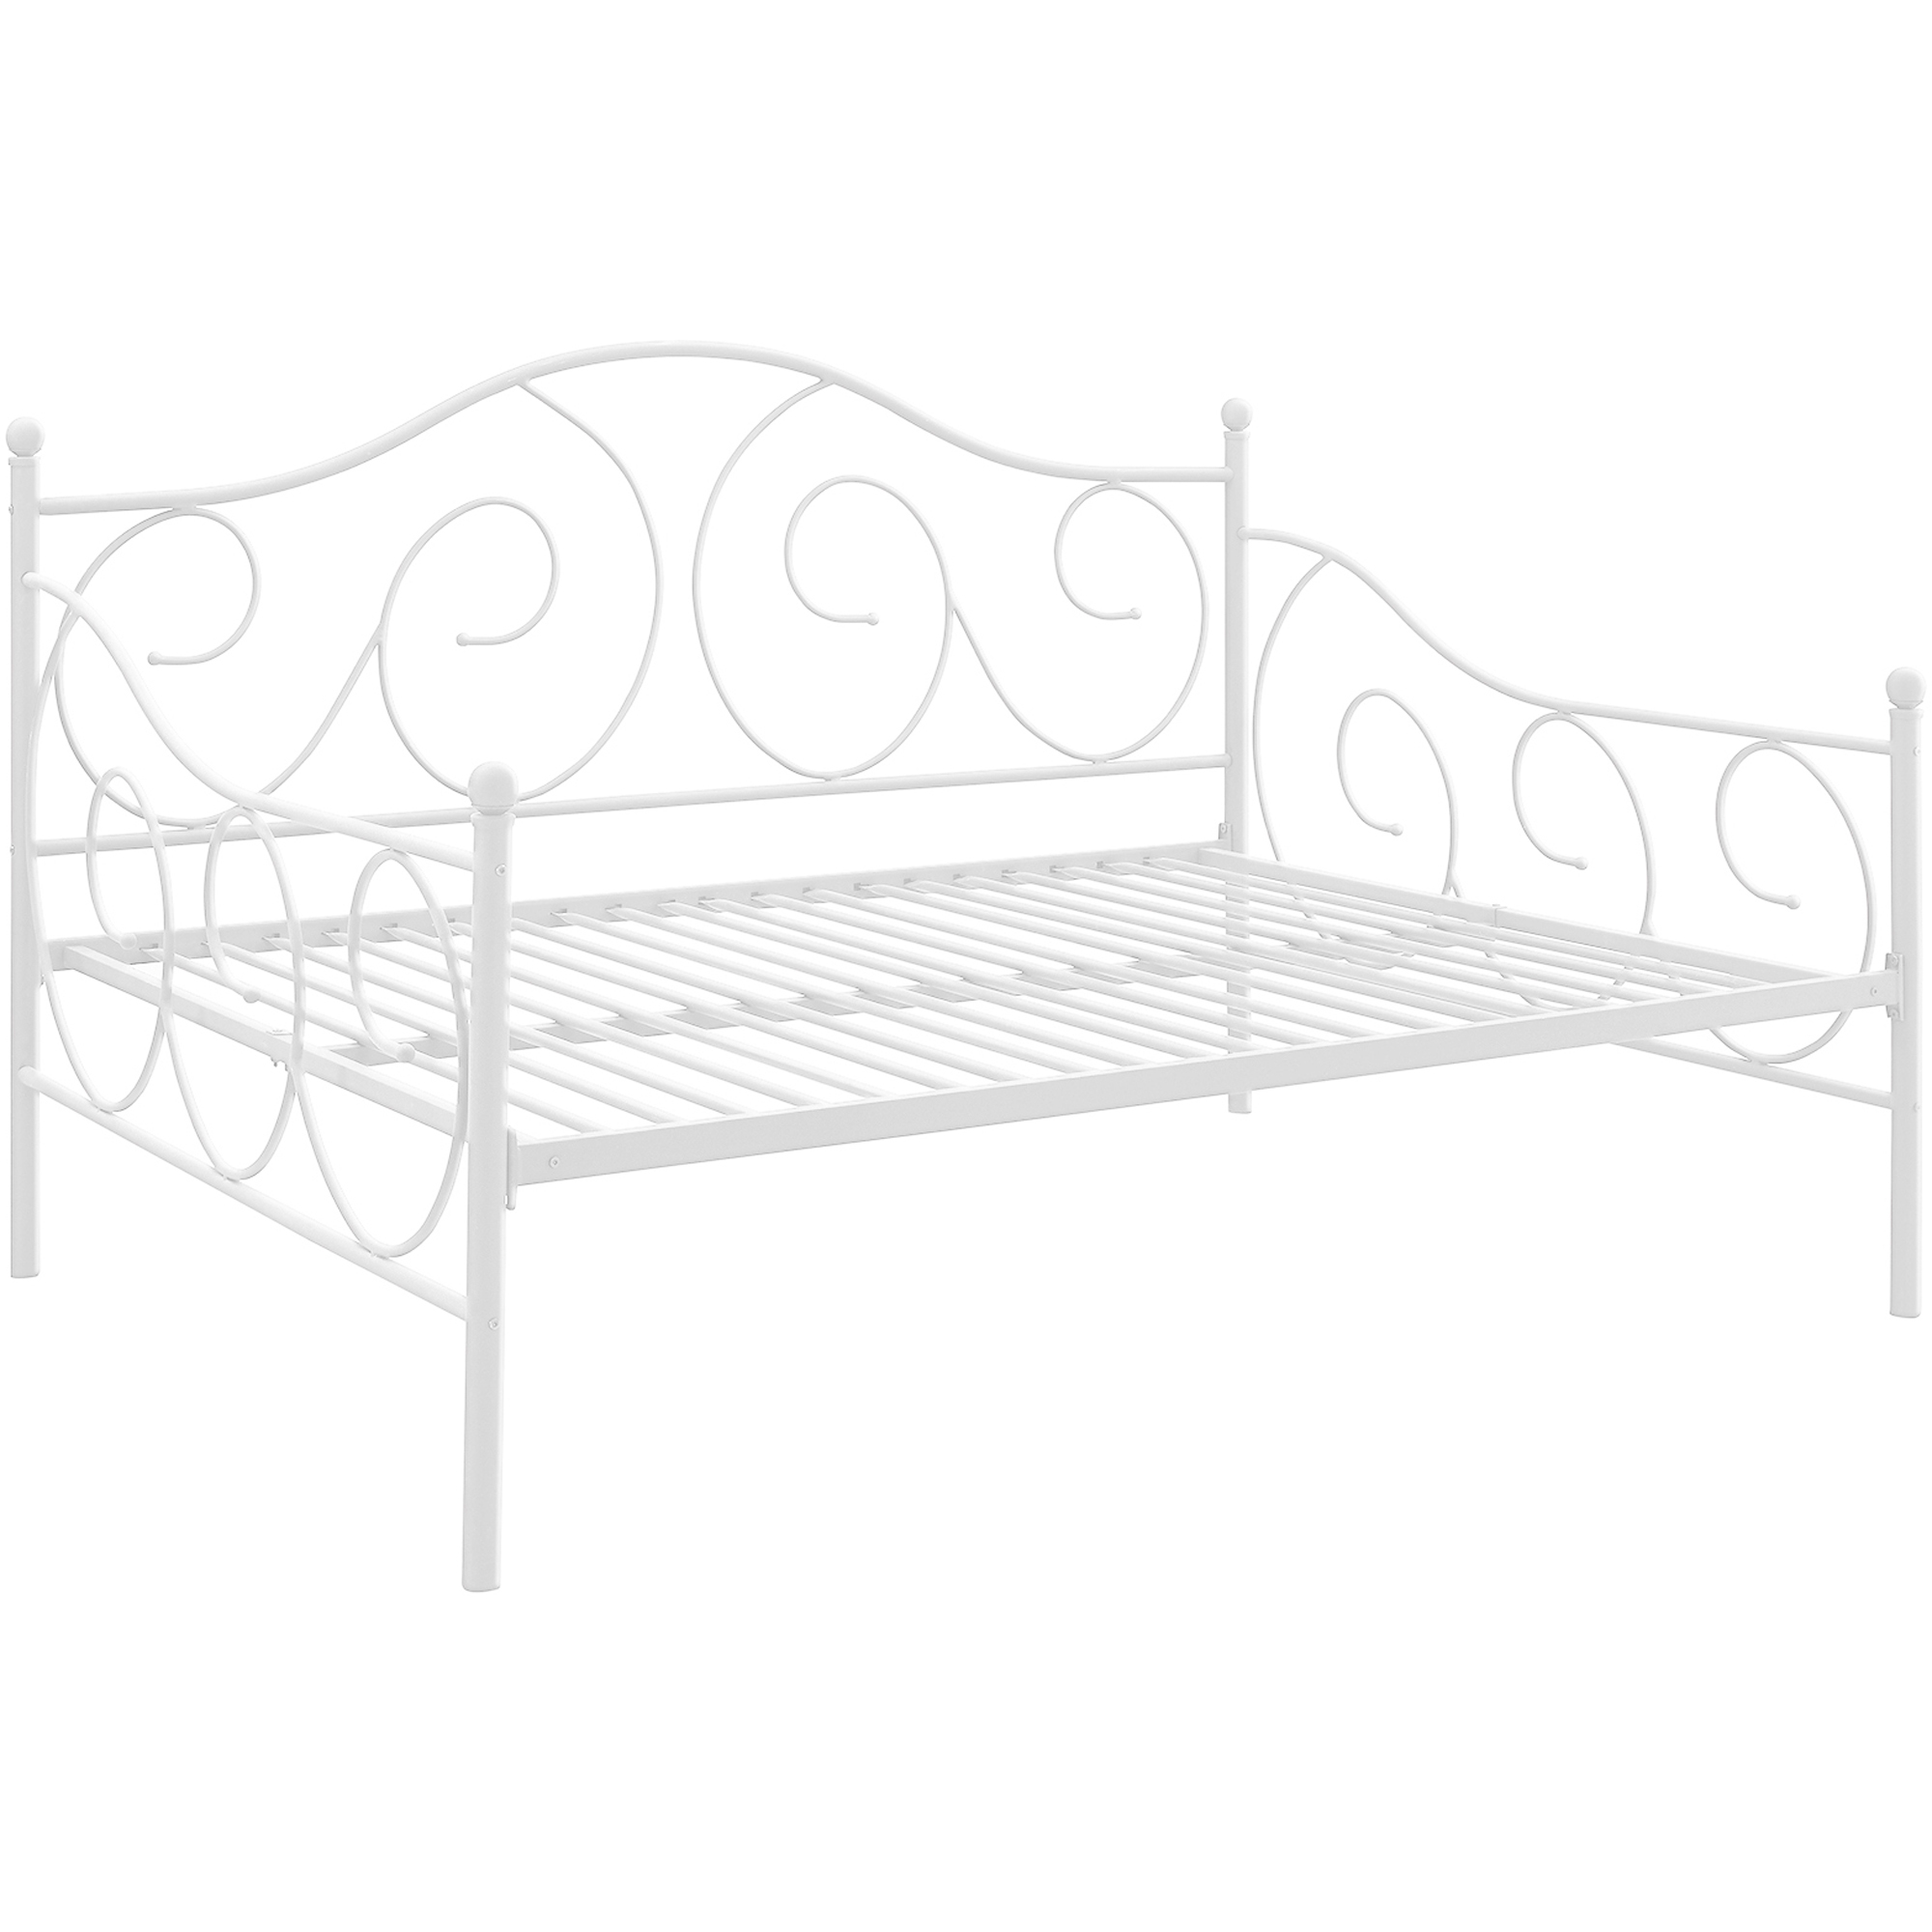 White metal daybed with floral finials - White Metal Daybed With Floral Finials